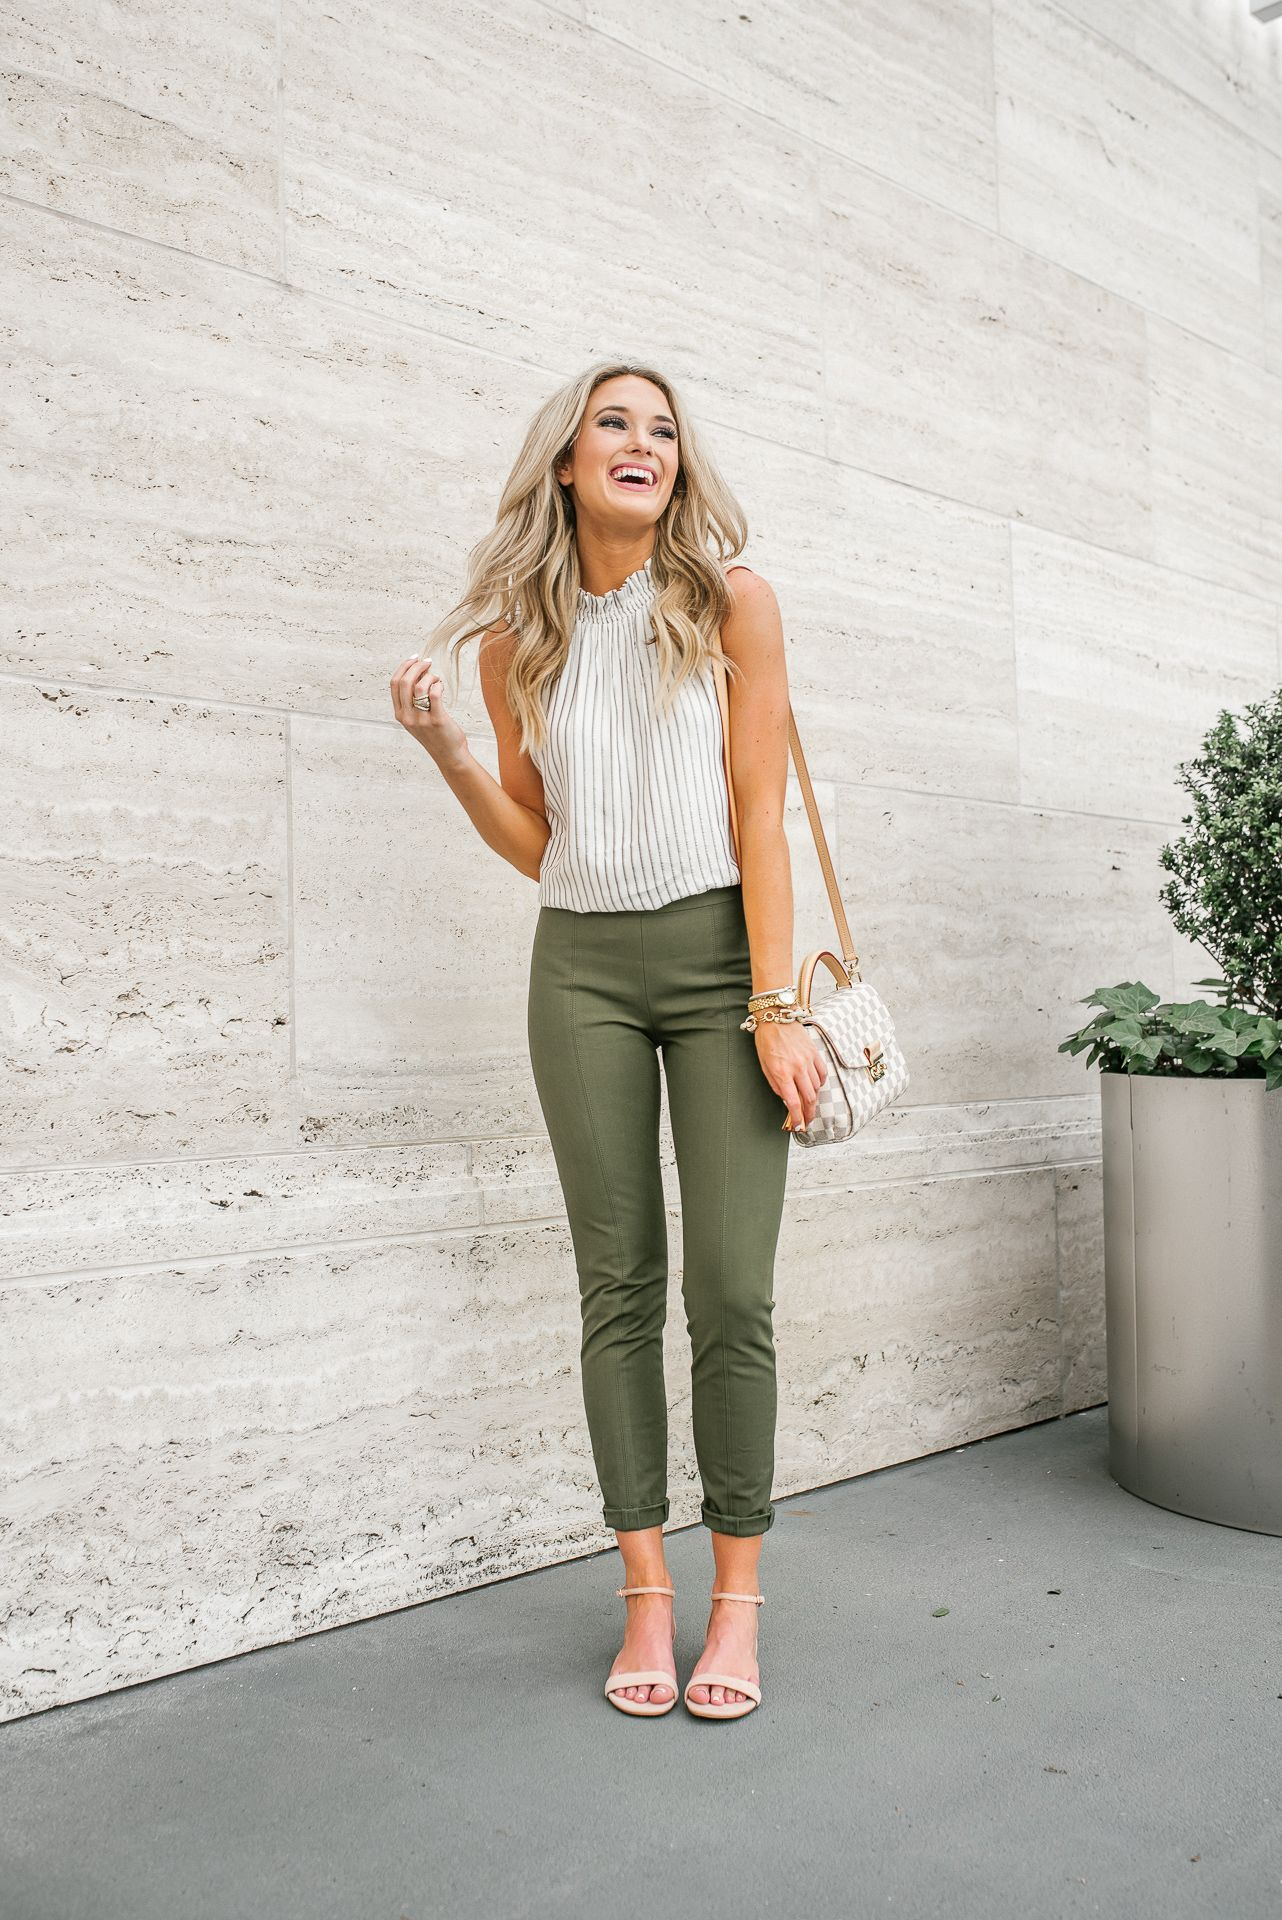 Work Wear to Casual Look | Work outfits women, Cute work ...